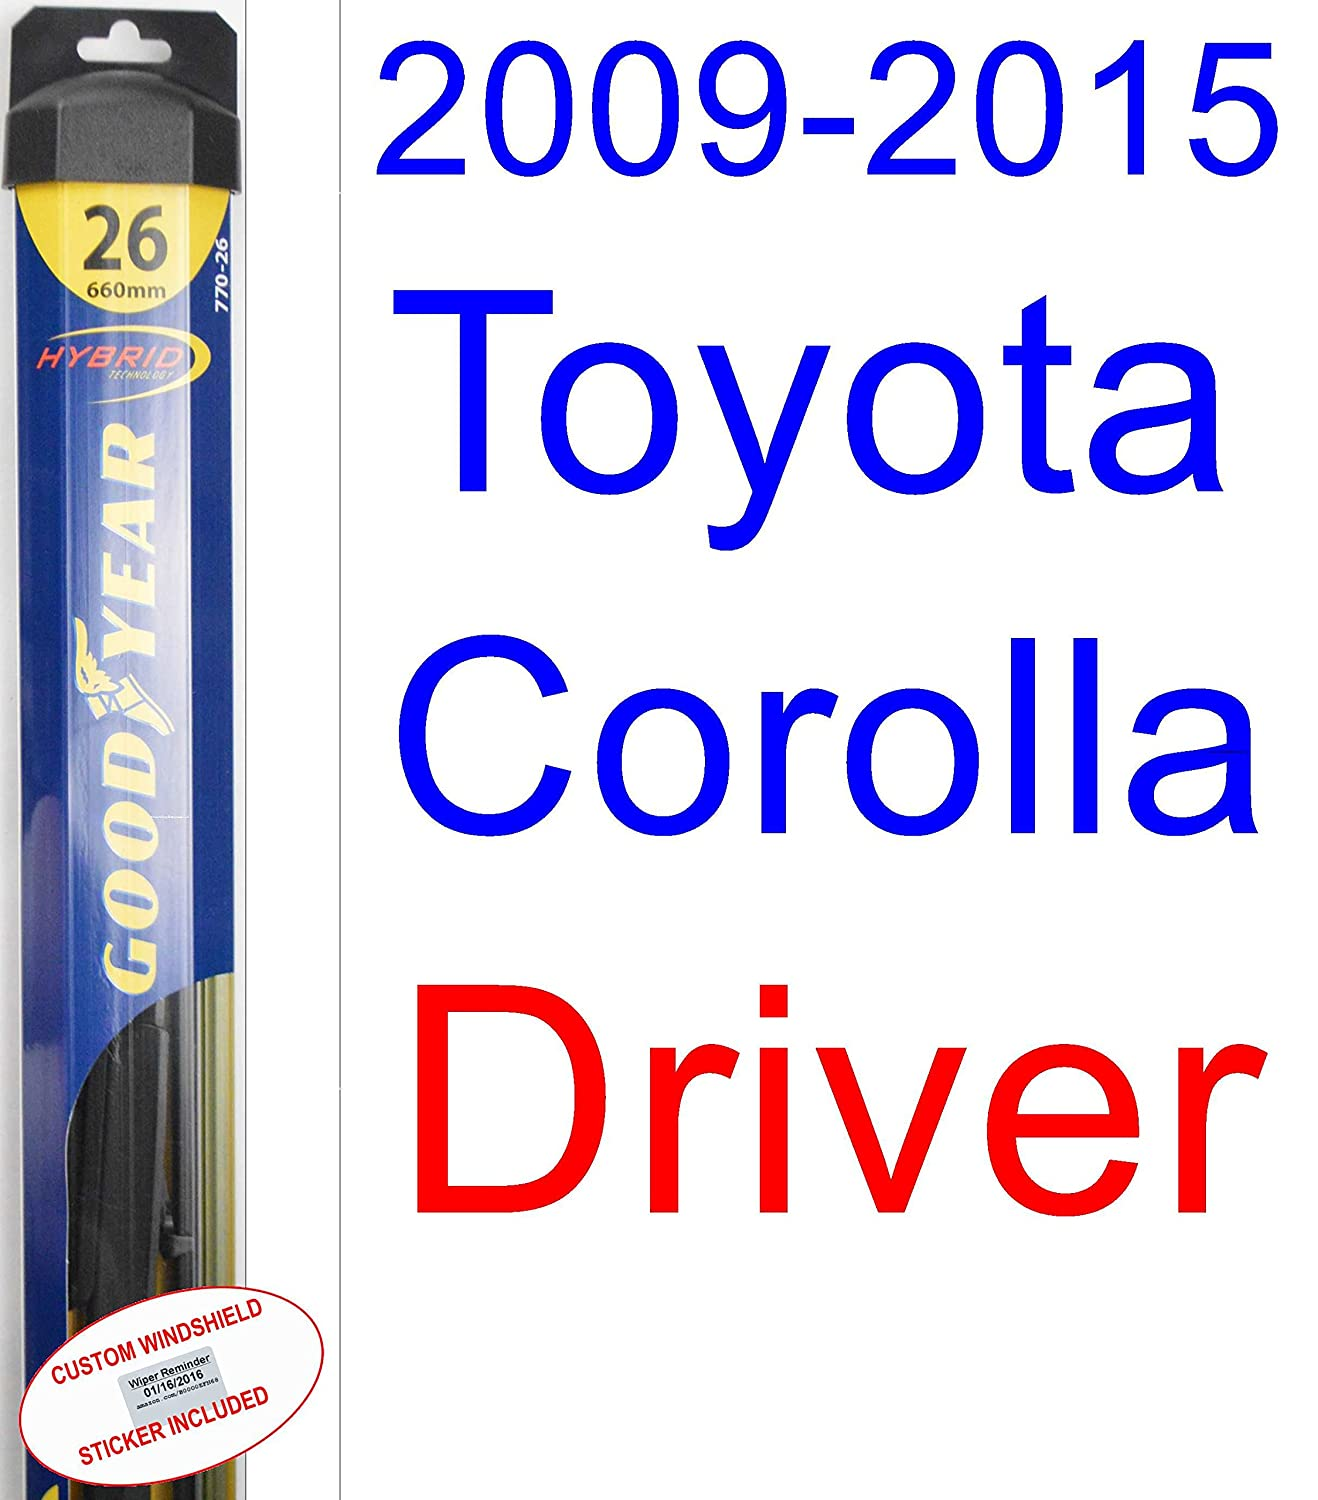 Amazon.com: 2009-2015 Toyota Corolla LE Replacement Wiper Blade Set/Kit (Set of 2 Blades) (Goodyear Wiper Blades-Hybrid) (2010,2011,2012,2013,2014): ...